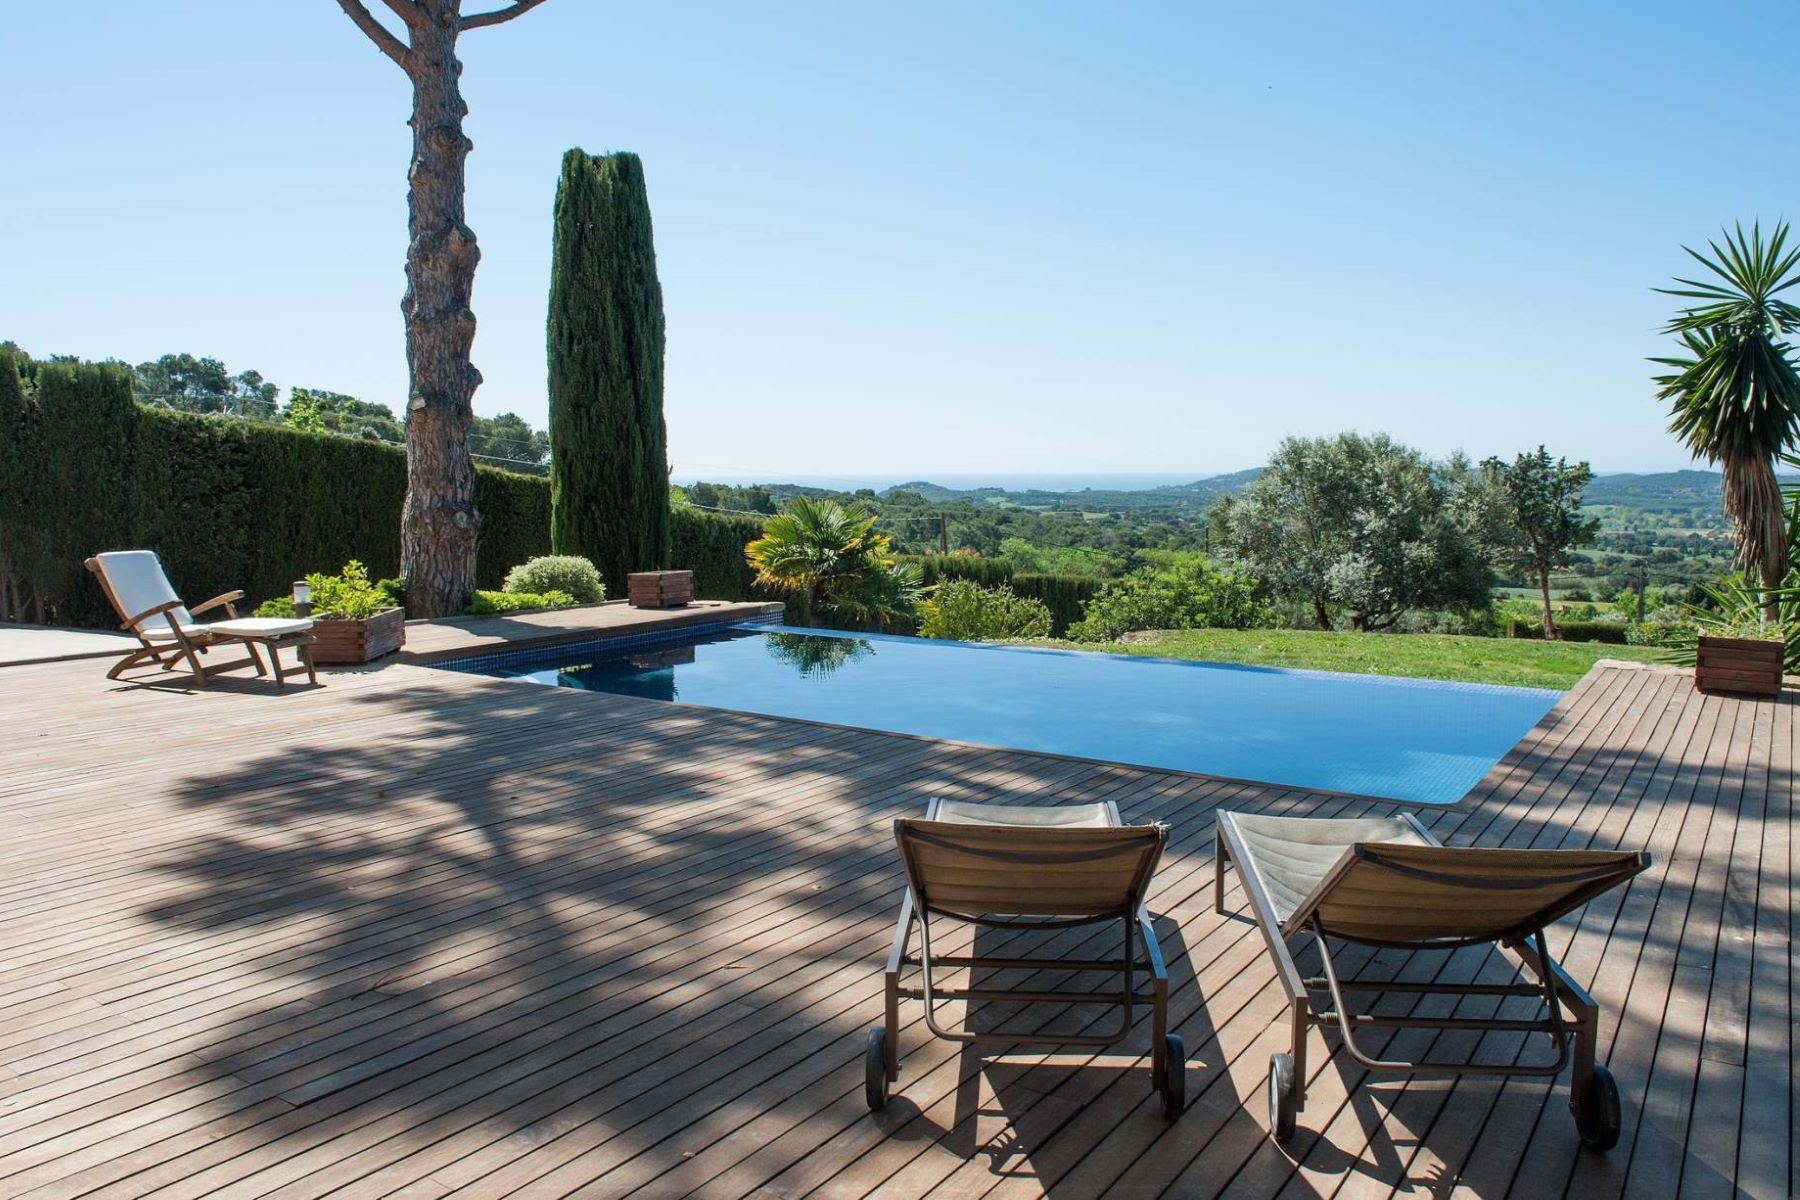 Single Family Home for Sale at Spectacular modern house with panoramic views Begur, Costa Brava, 17255 Spain